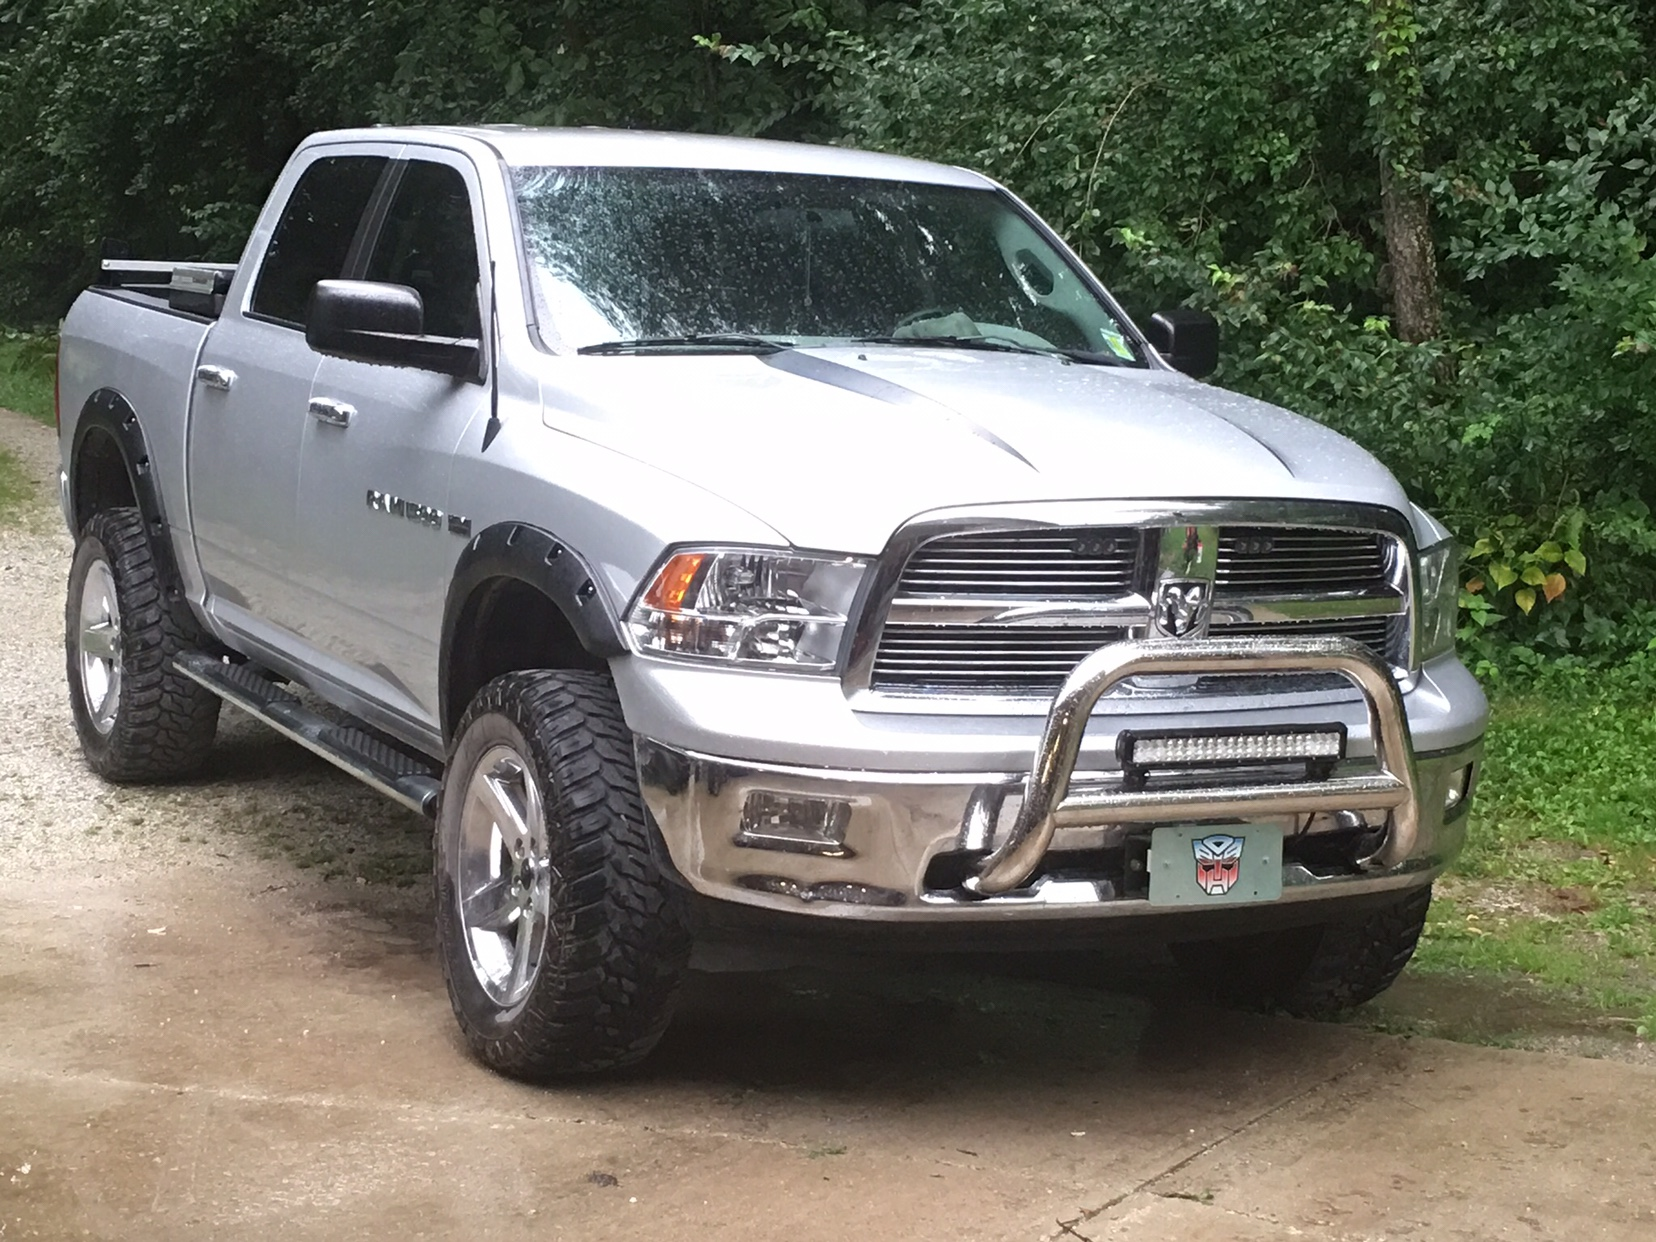 2017 Dodge Ram 5.7 Hemi >> Let's see some bull bars!! I'm interested in black mostly | Page 2 | DODGE RAM FORUM - Dodge ...